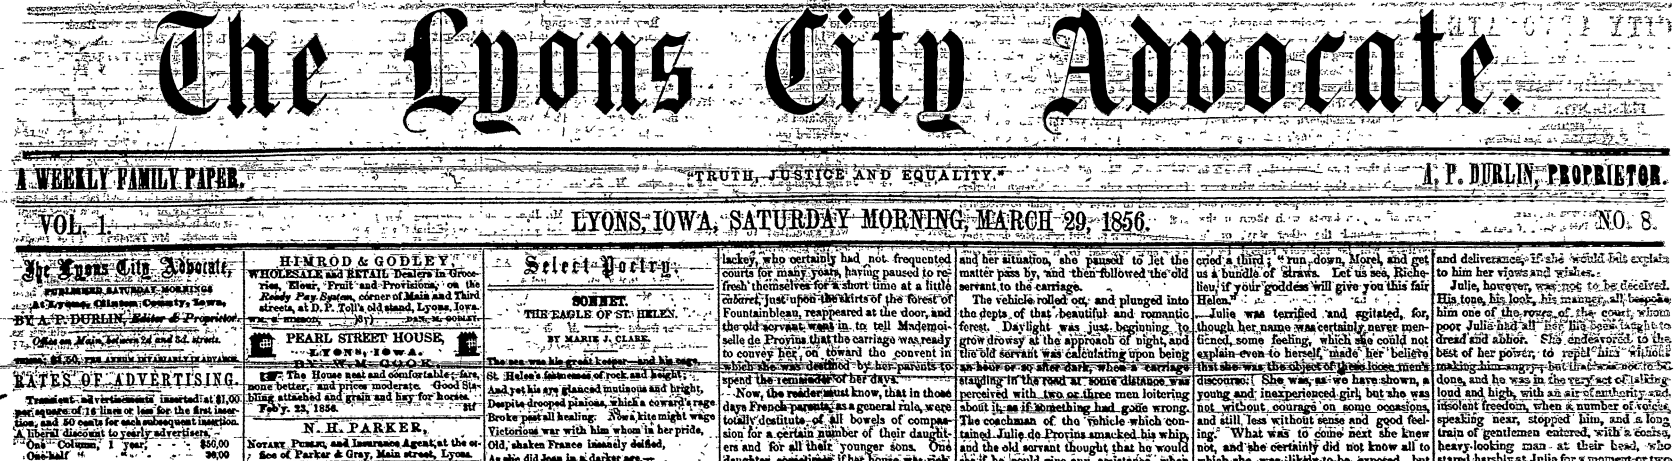 Clinton Area Newspapers From 1856 -1927 Available Online